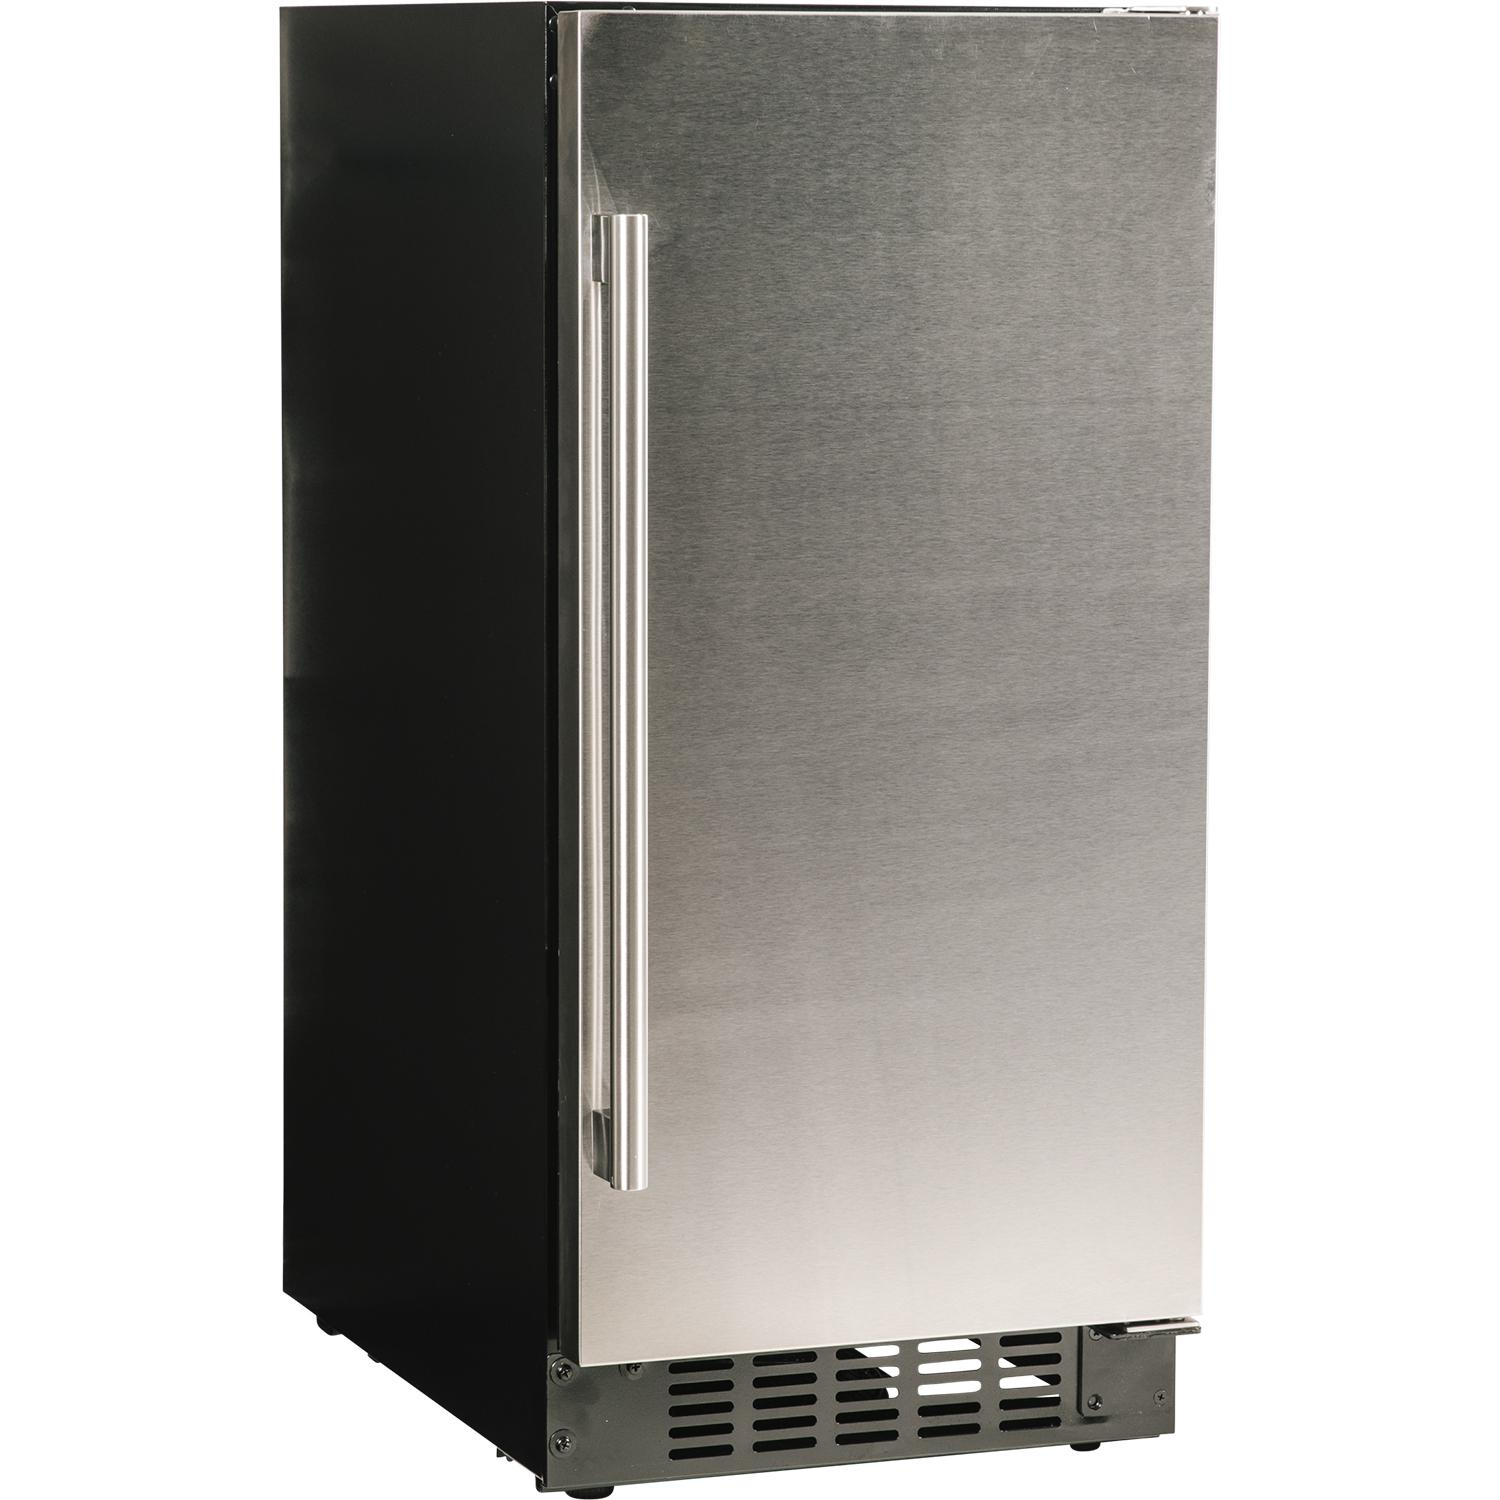 """Azure 15"""" 3 Cu. Ft. Compact Refrigerator - Stainless Steel - A115r-s"""